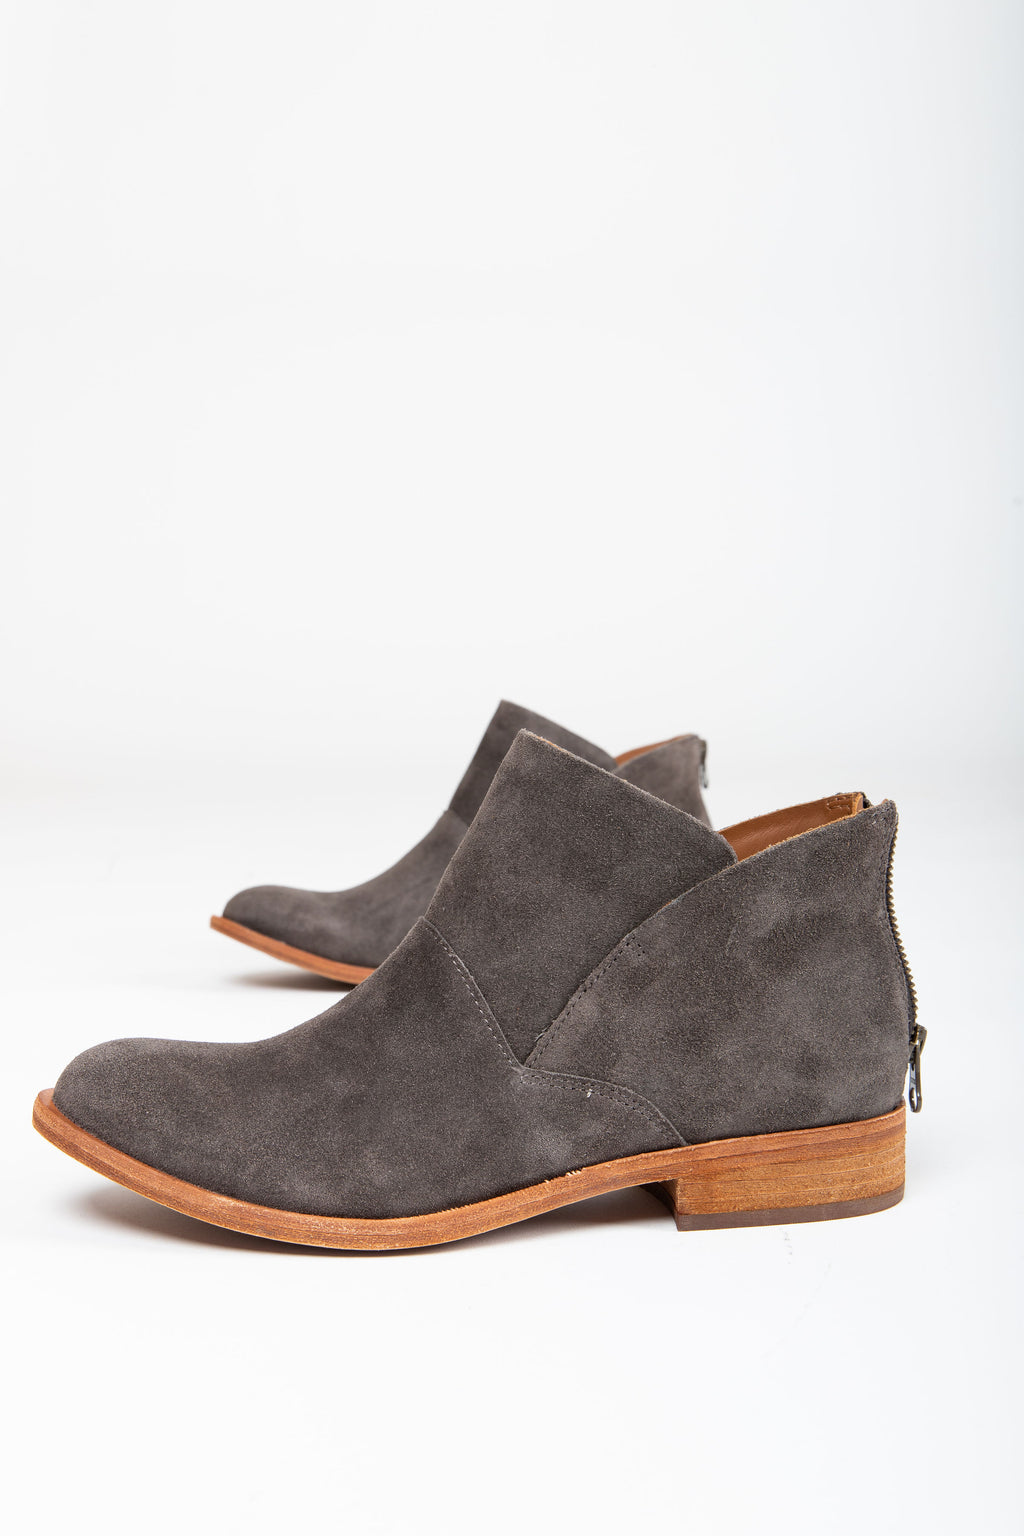 Korkease: Ryder Bootie in Grey